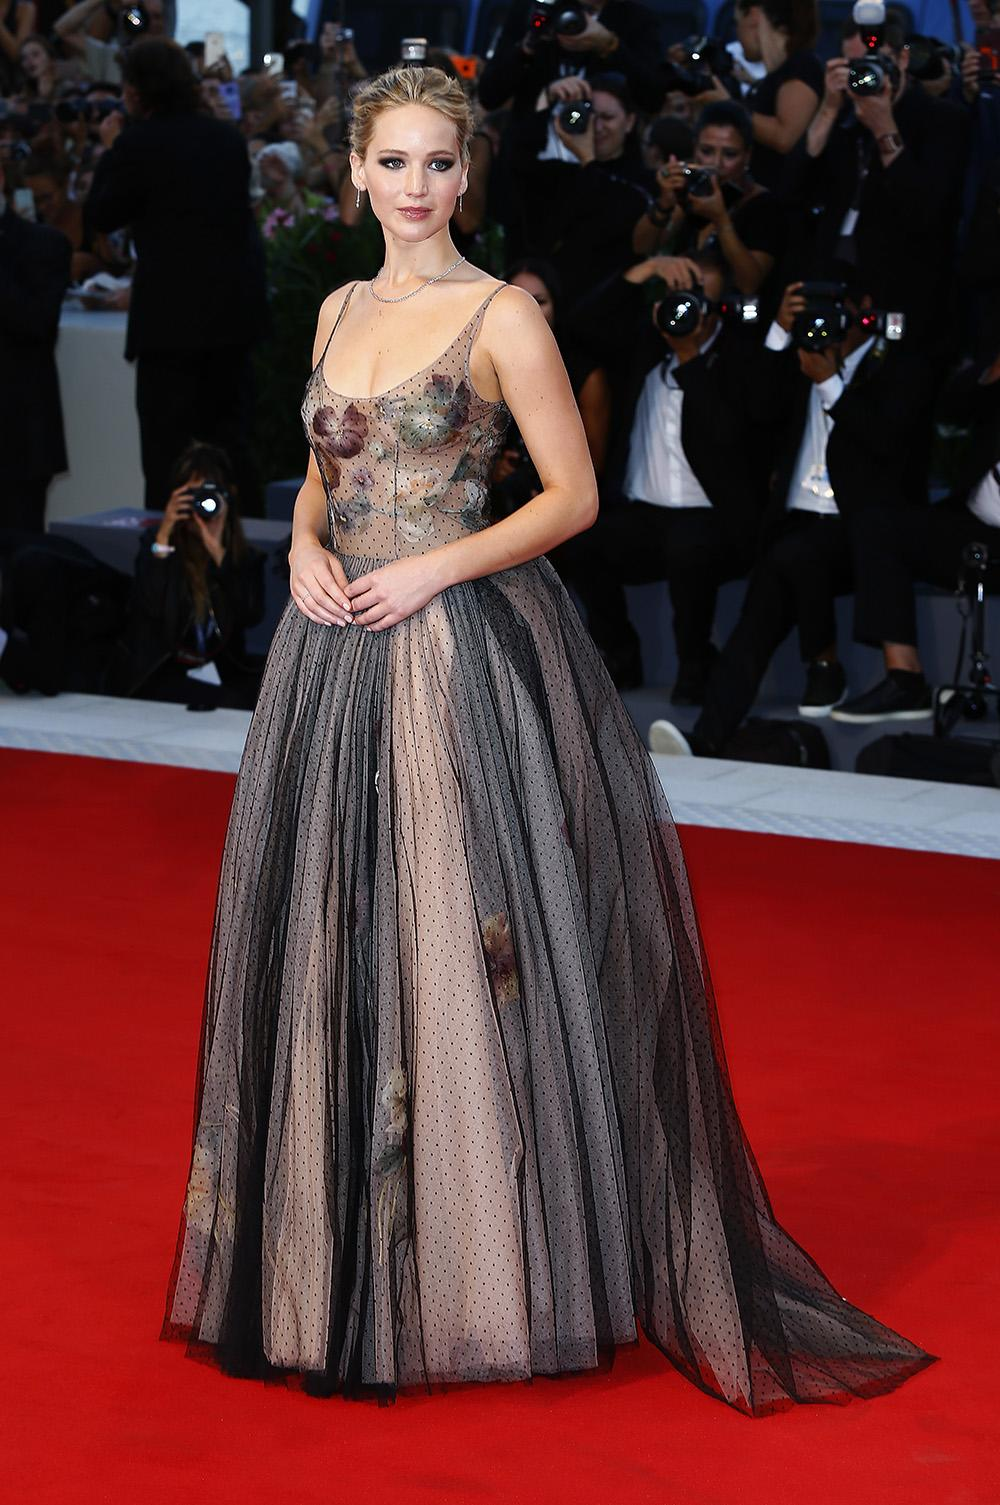 c8050f08b She stunned that same night in a Dior gown. (Photo by Ernesto Ruscio Getty  Images). More. For the event s red carpet